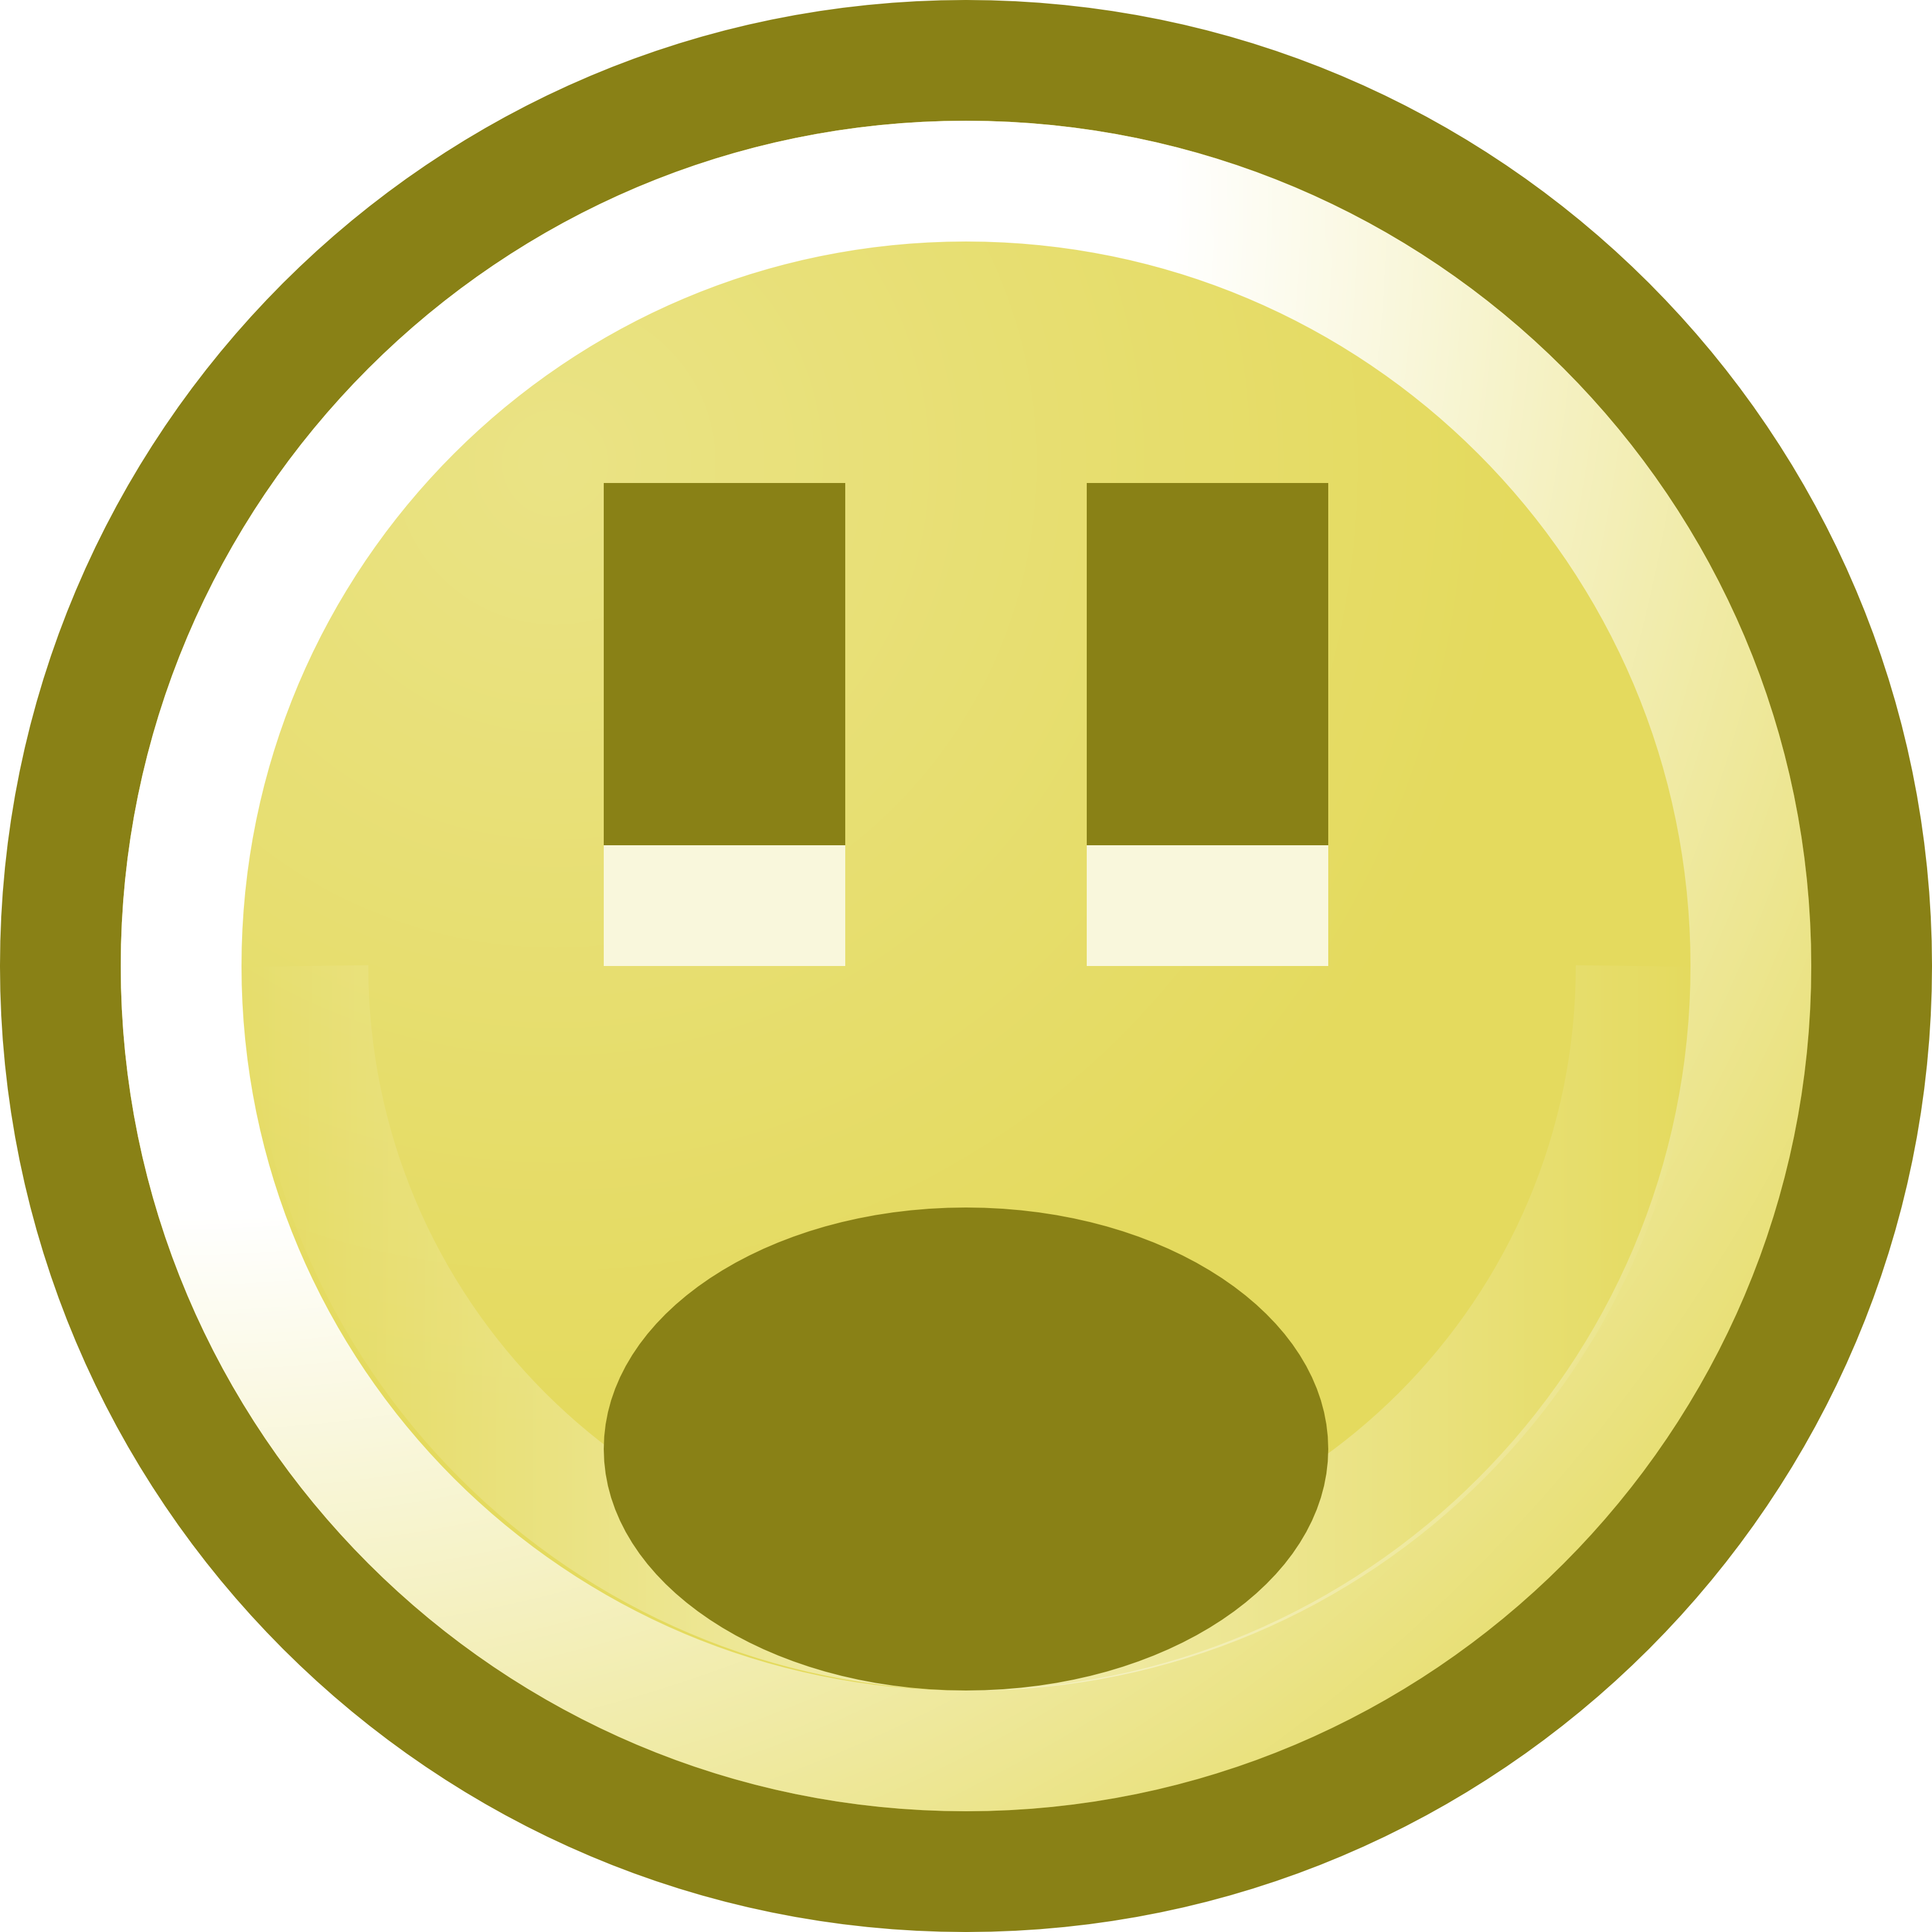 Free Shocked Smiley Face Clip Art Illustration by 000131 .